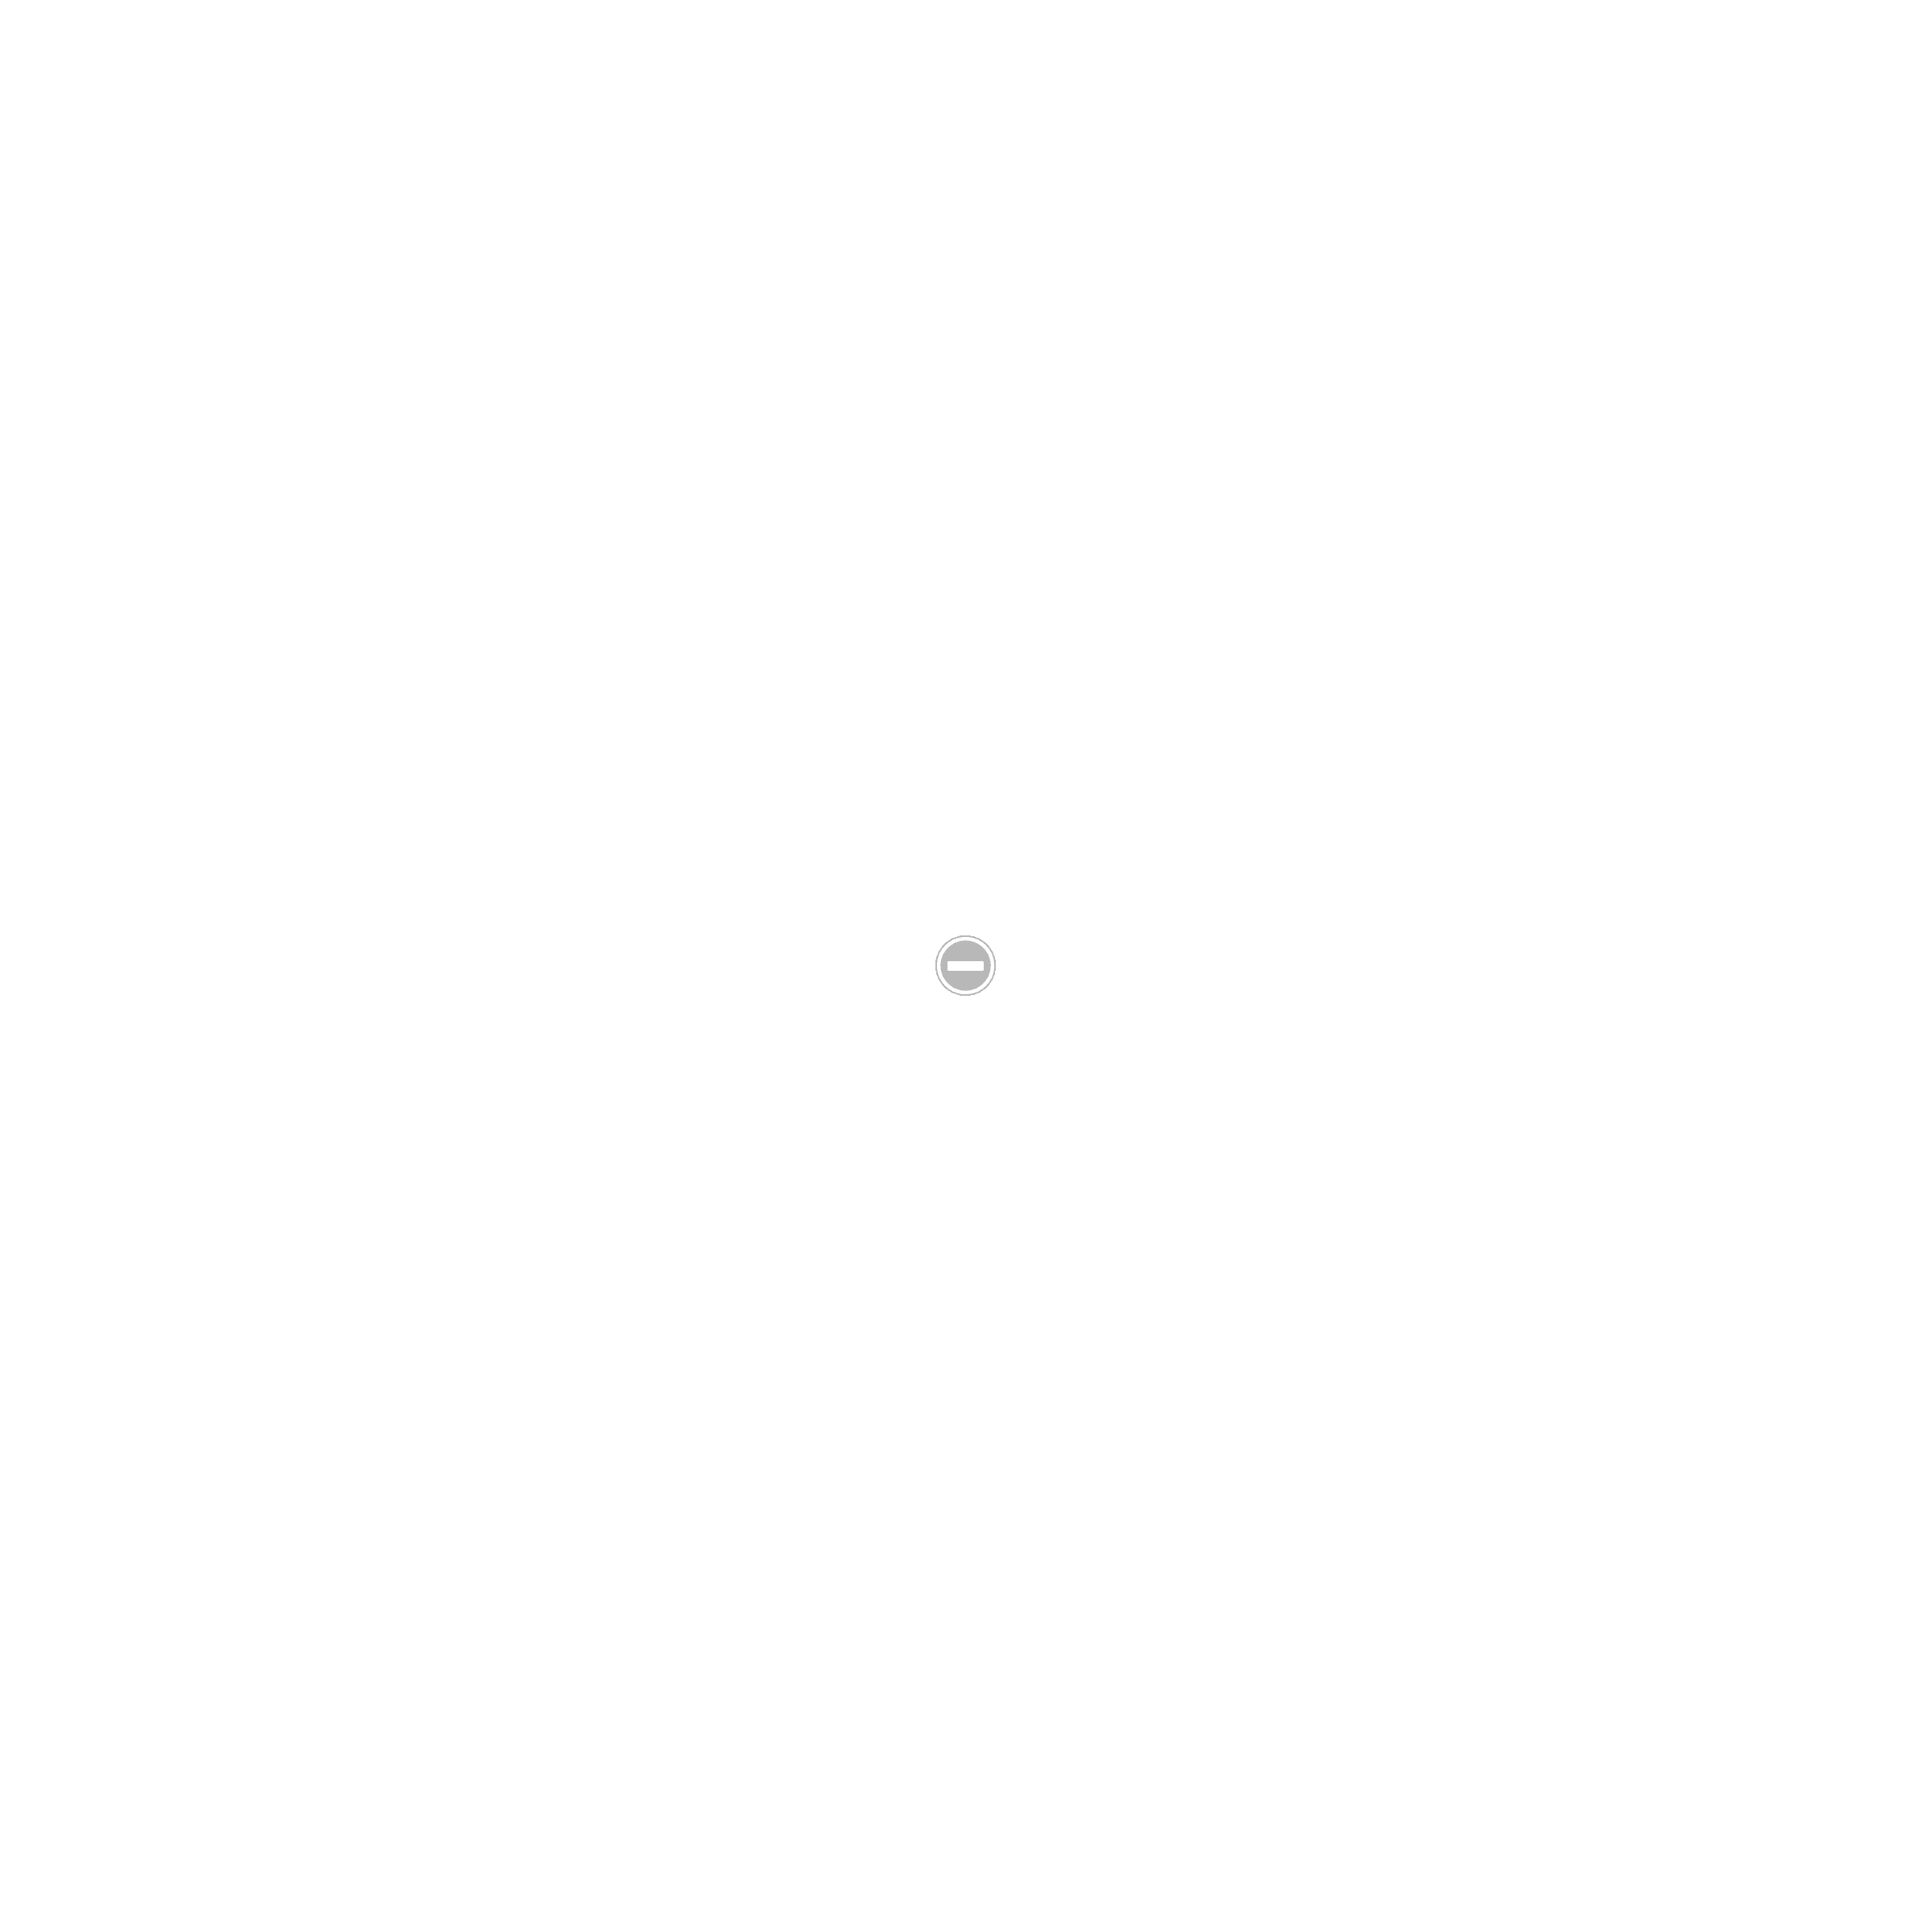 33 Harmony, Visayas Avenue, Quezon City Unit O Spot downpayment computation